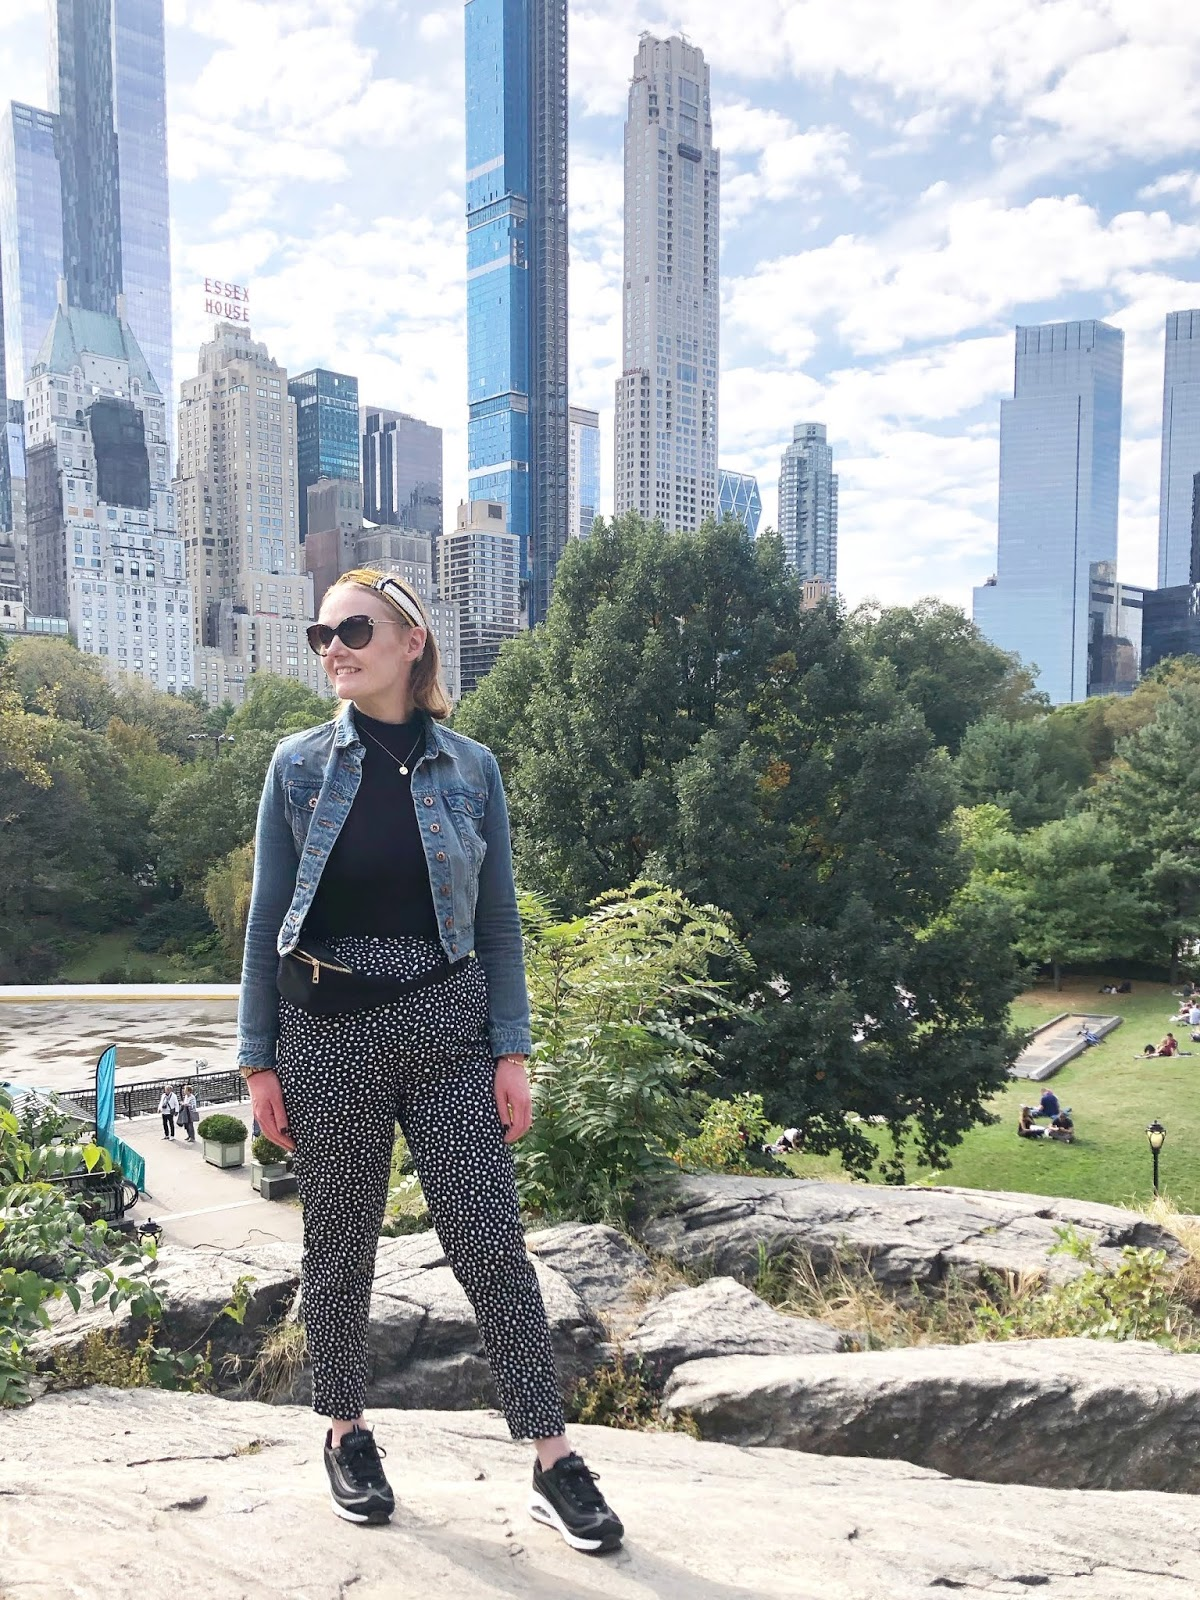 40 Things you must do in New York - Central Park